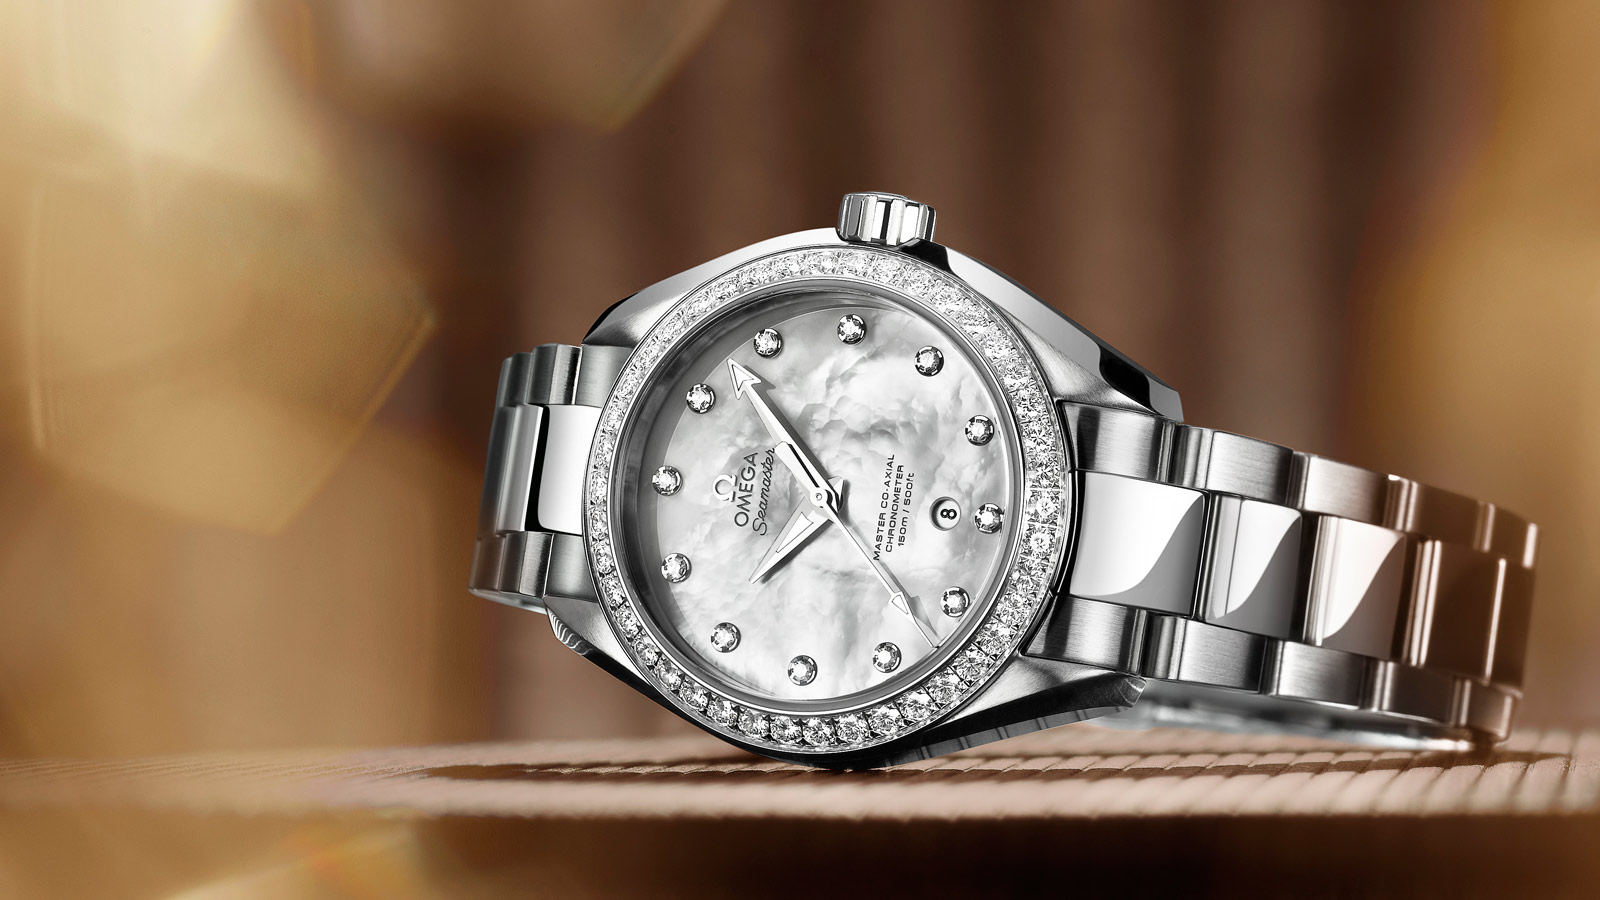 Seamaster Aqua Terra 150M Aqua Terra 150M Omega Master Co‑Axial 34 mm Donna - 231.15.34.20.55.002 - Visualizzare 2